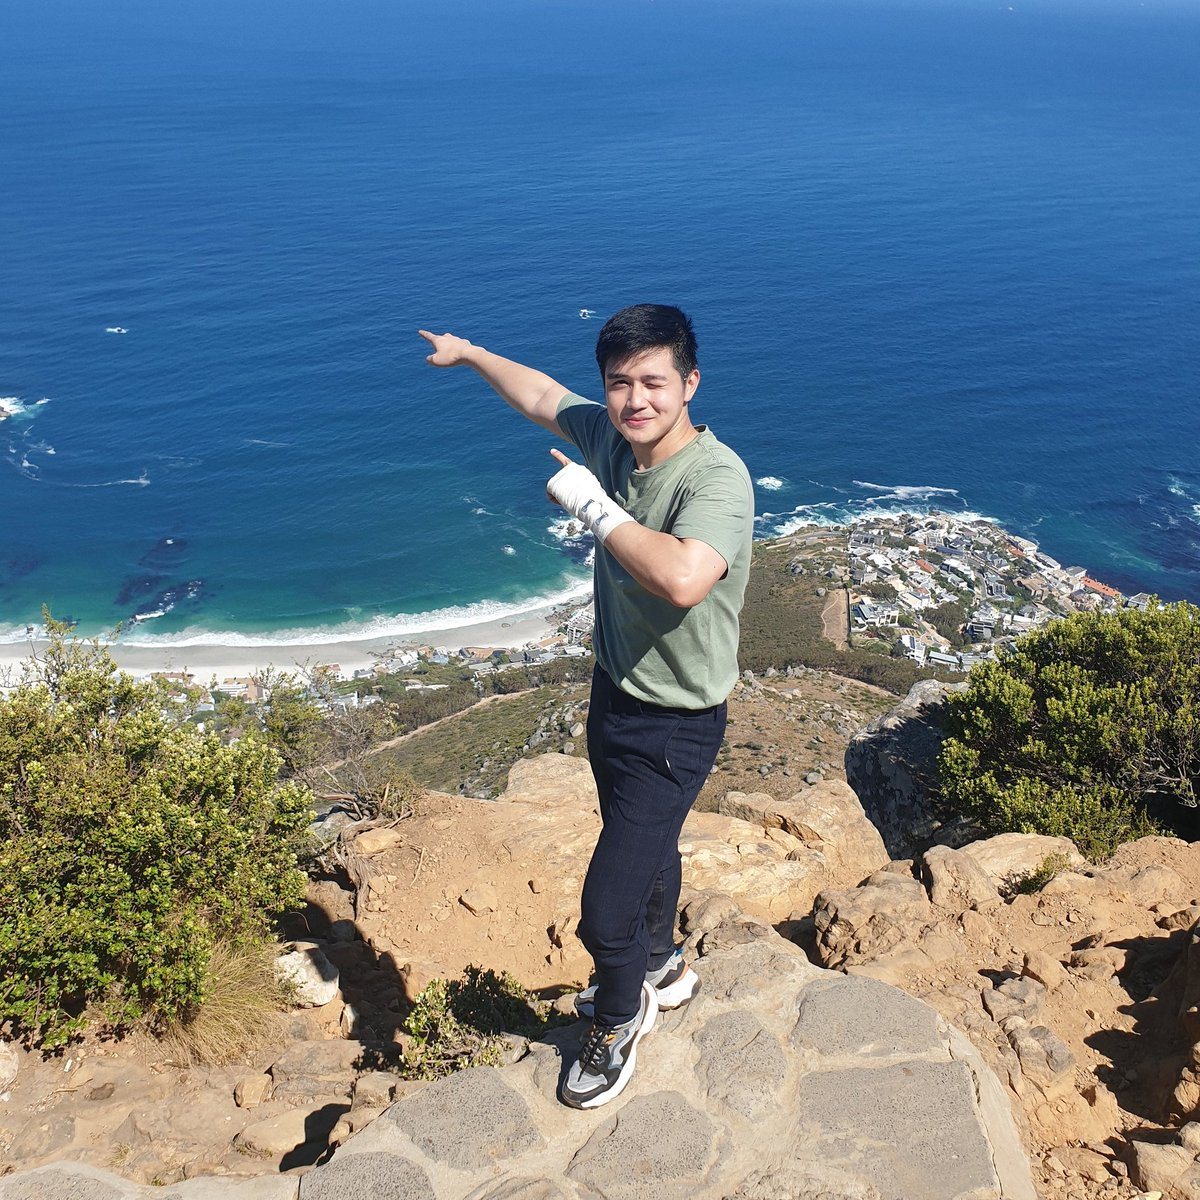 Made it to the peak of Lion's Head in Capetown, South Africa!   Great experience! pic.twitter.com/Bu3ympy6XR